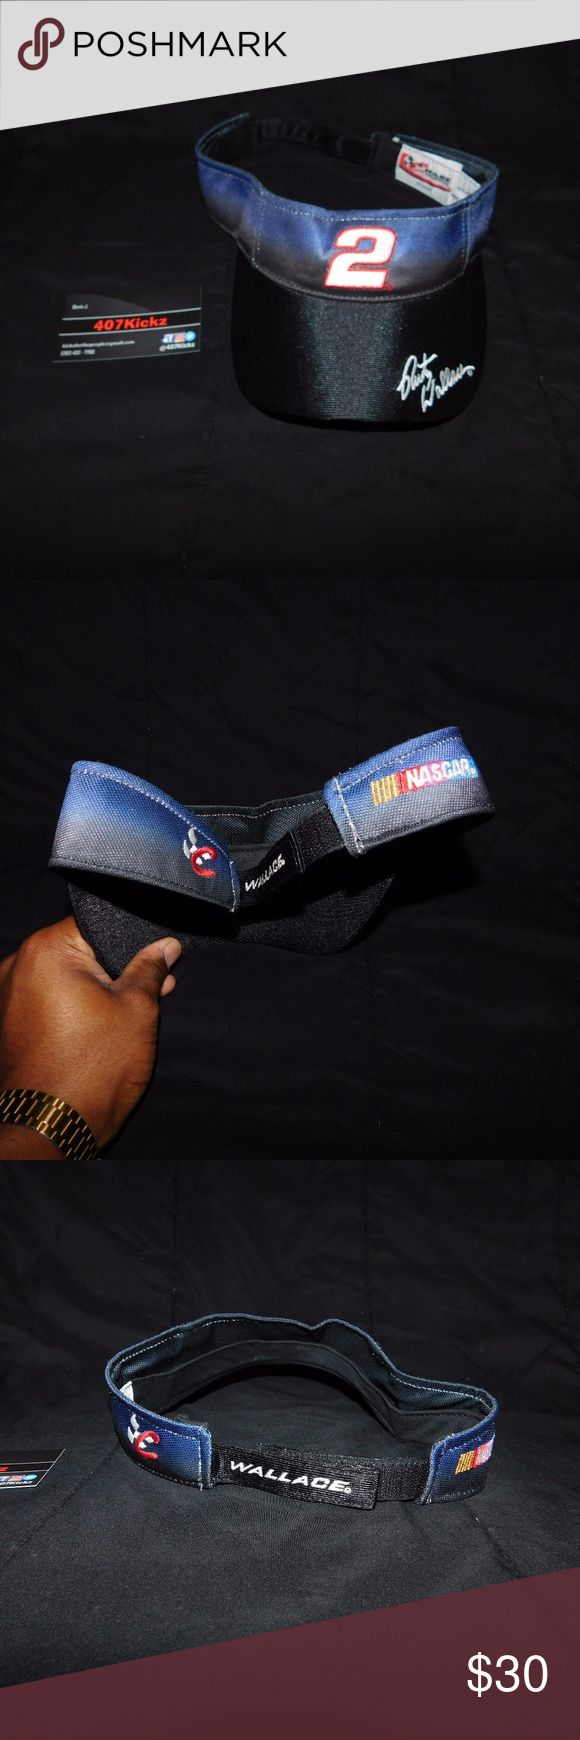 Rusty Wallace Nascar Visor USED Rusty Wallace #2 Nascar Racing Visor hat Adjustable Chase Authentics | Adjustable Size | hook and loop fastener | great condition, no flaws  For Discounts Follow Me on Instagram @407vintage !  KEYWORDS/TAGS: ultra boost , Tommy Hilfiger , Polo Sport , Nautica , NMD , supreme , kith , bred , adidas , banned , french blue , stussy , Maestro , vintage , kaws , solefly , trophy room , box logo , gamma blue , retro jordan , steal , foams , foamposite , rare , nike…